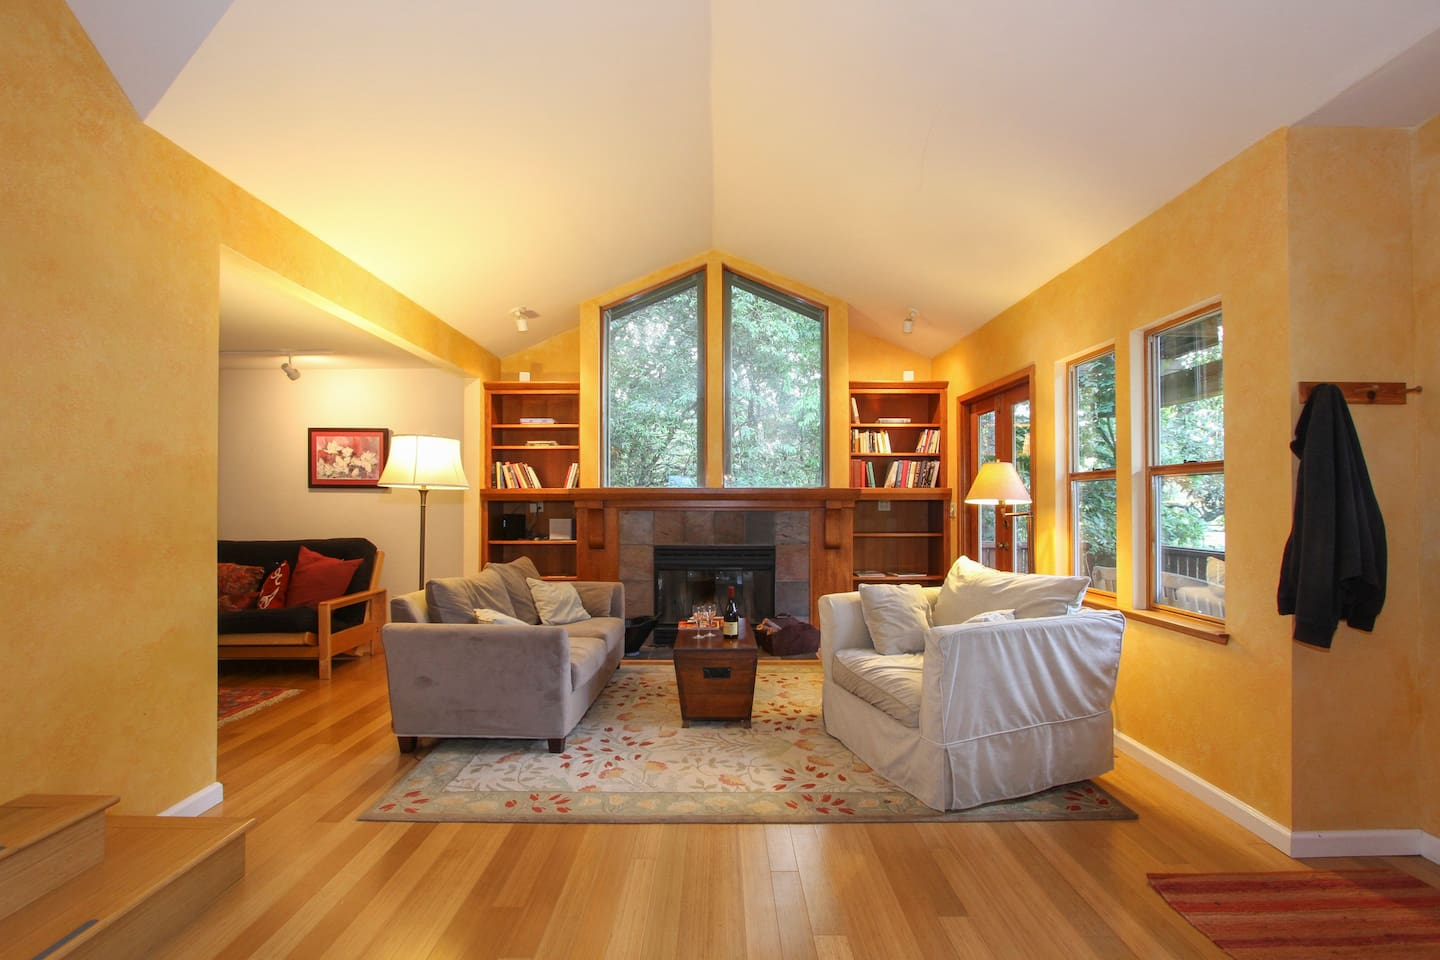 Living Room with fireplace; study to the left.